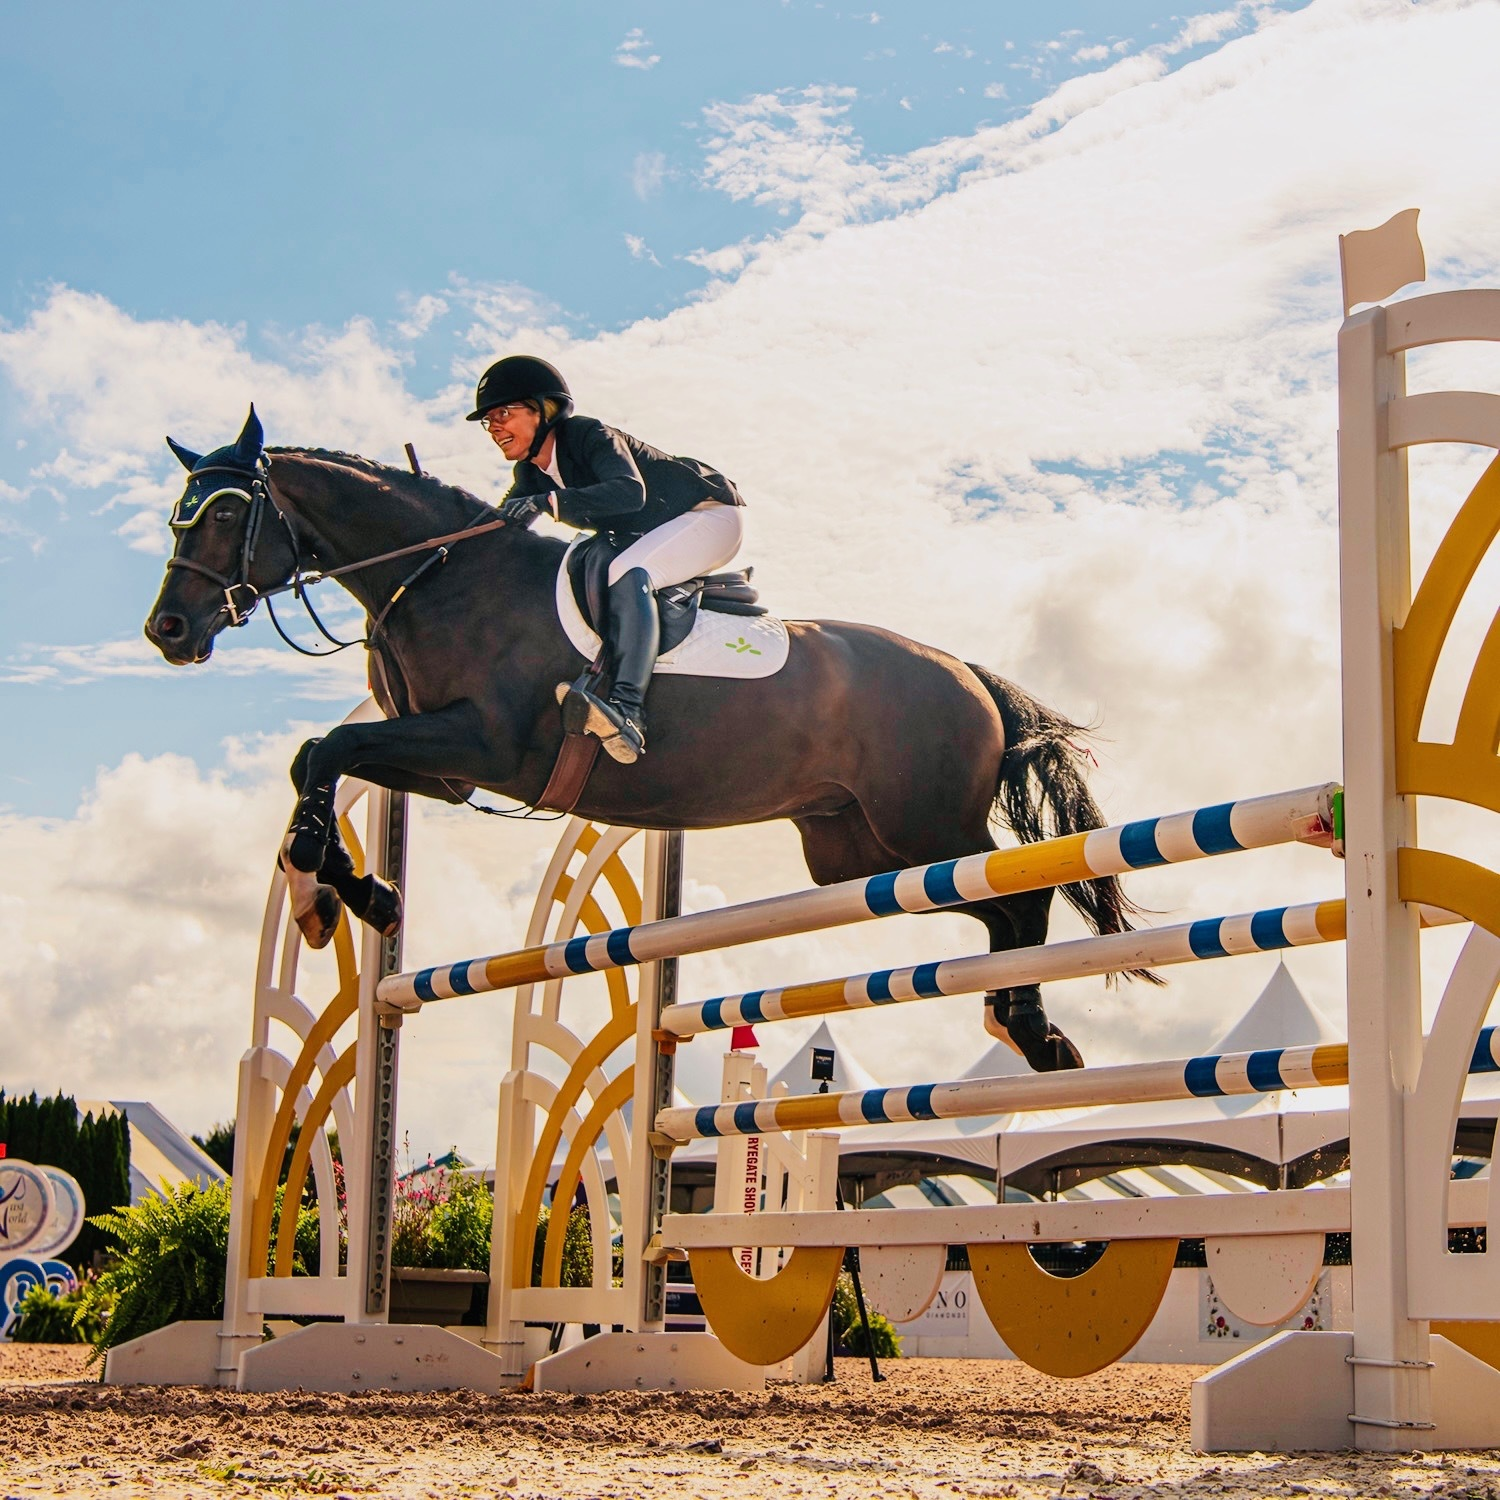 Sagaponack resident Dana Trotter and her horse, Balou's Boy, took the blue ribbon in the $5,000 Adult Jumper Classic at the Hampton Classic on Sunday, in a 52-horse field.